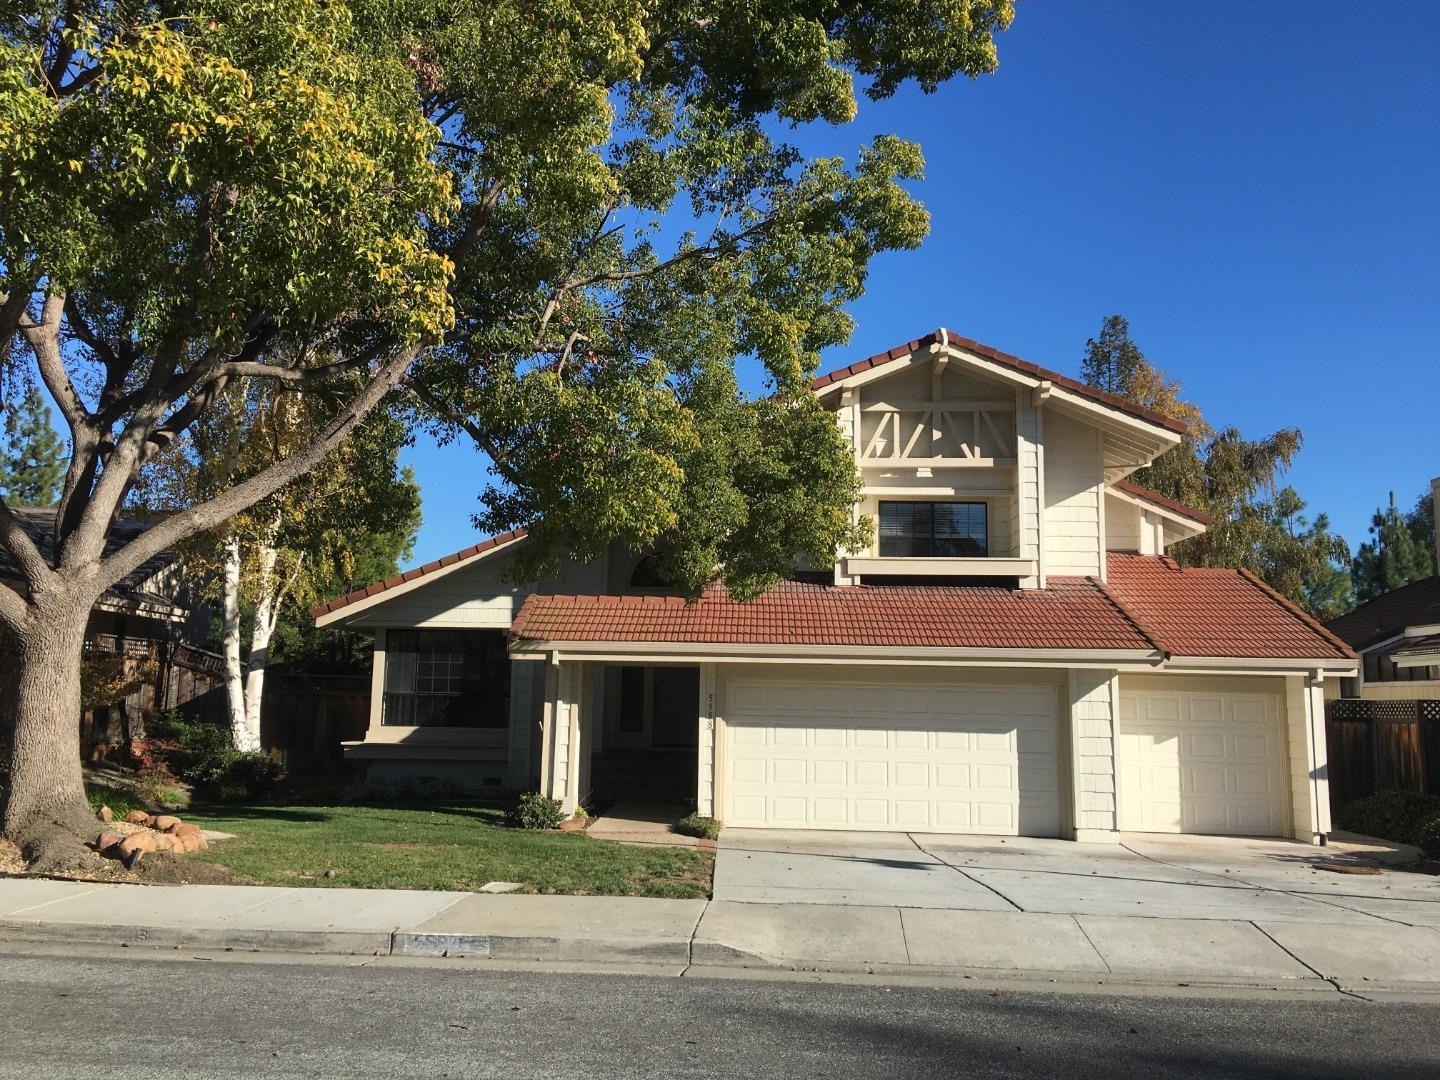 Property for sale at Starwood DR, San Jose,  CA 95120